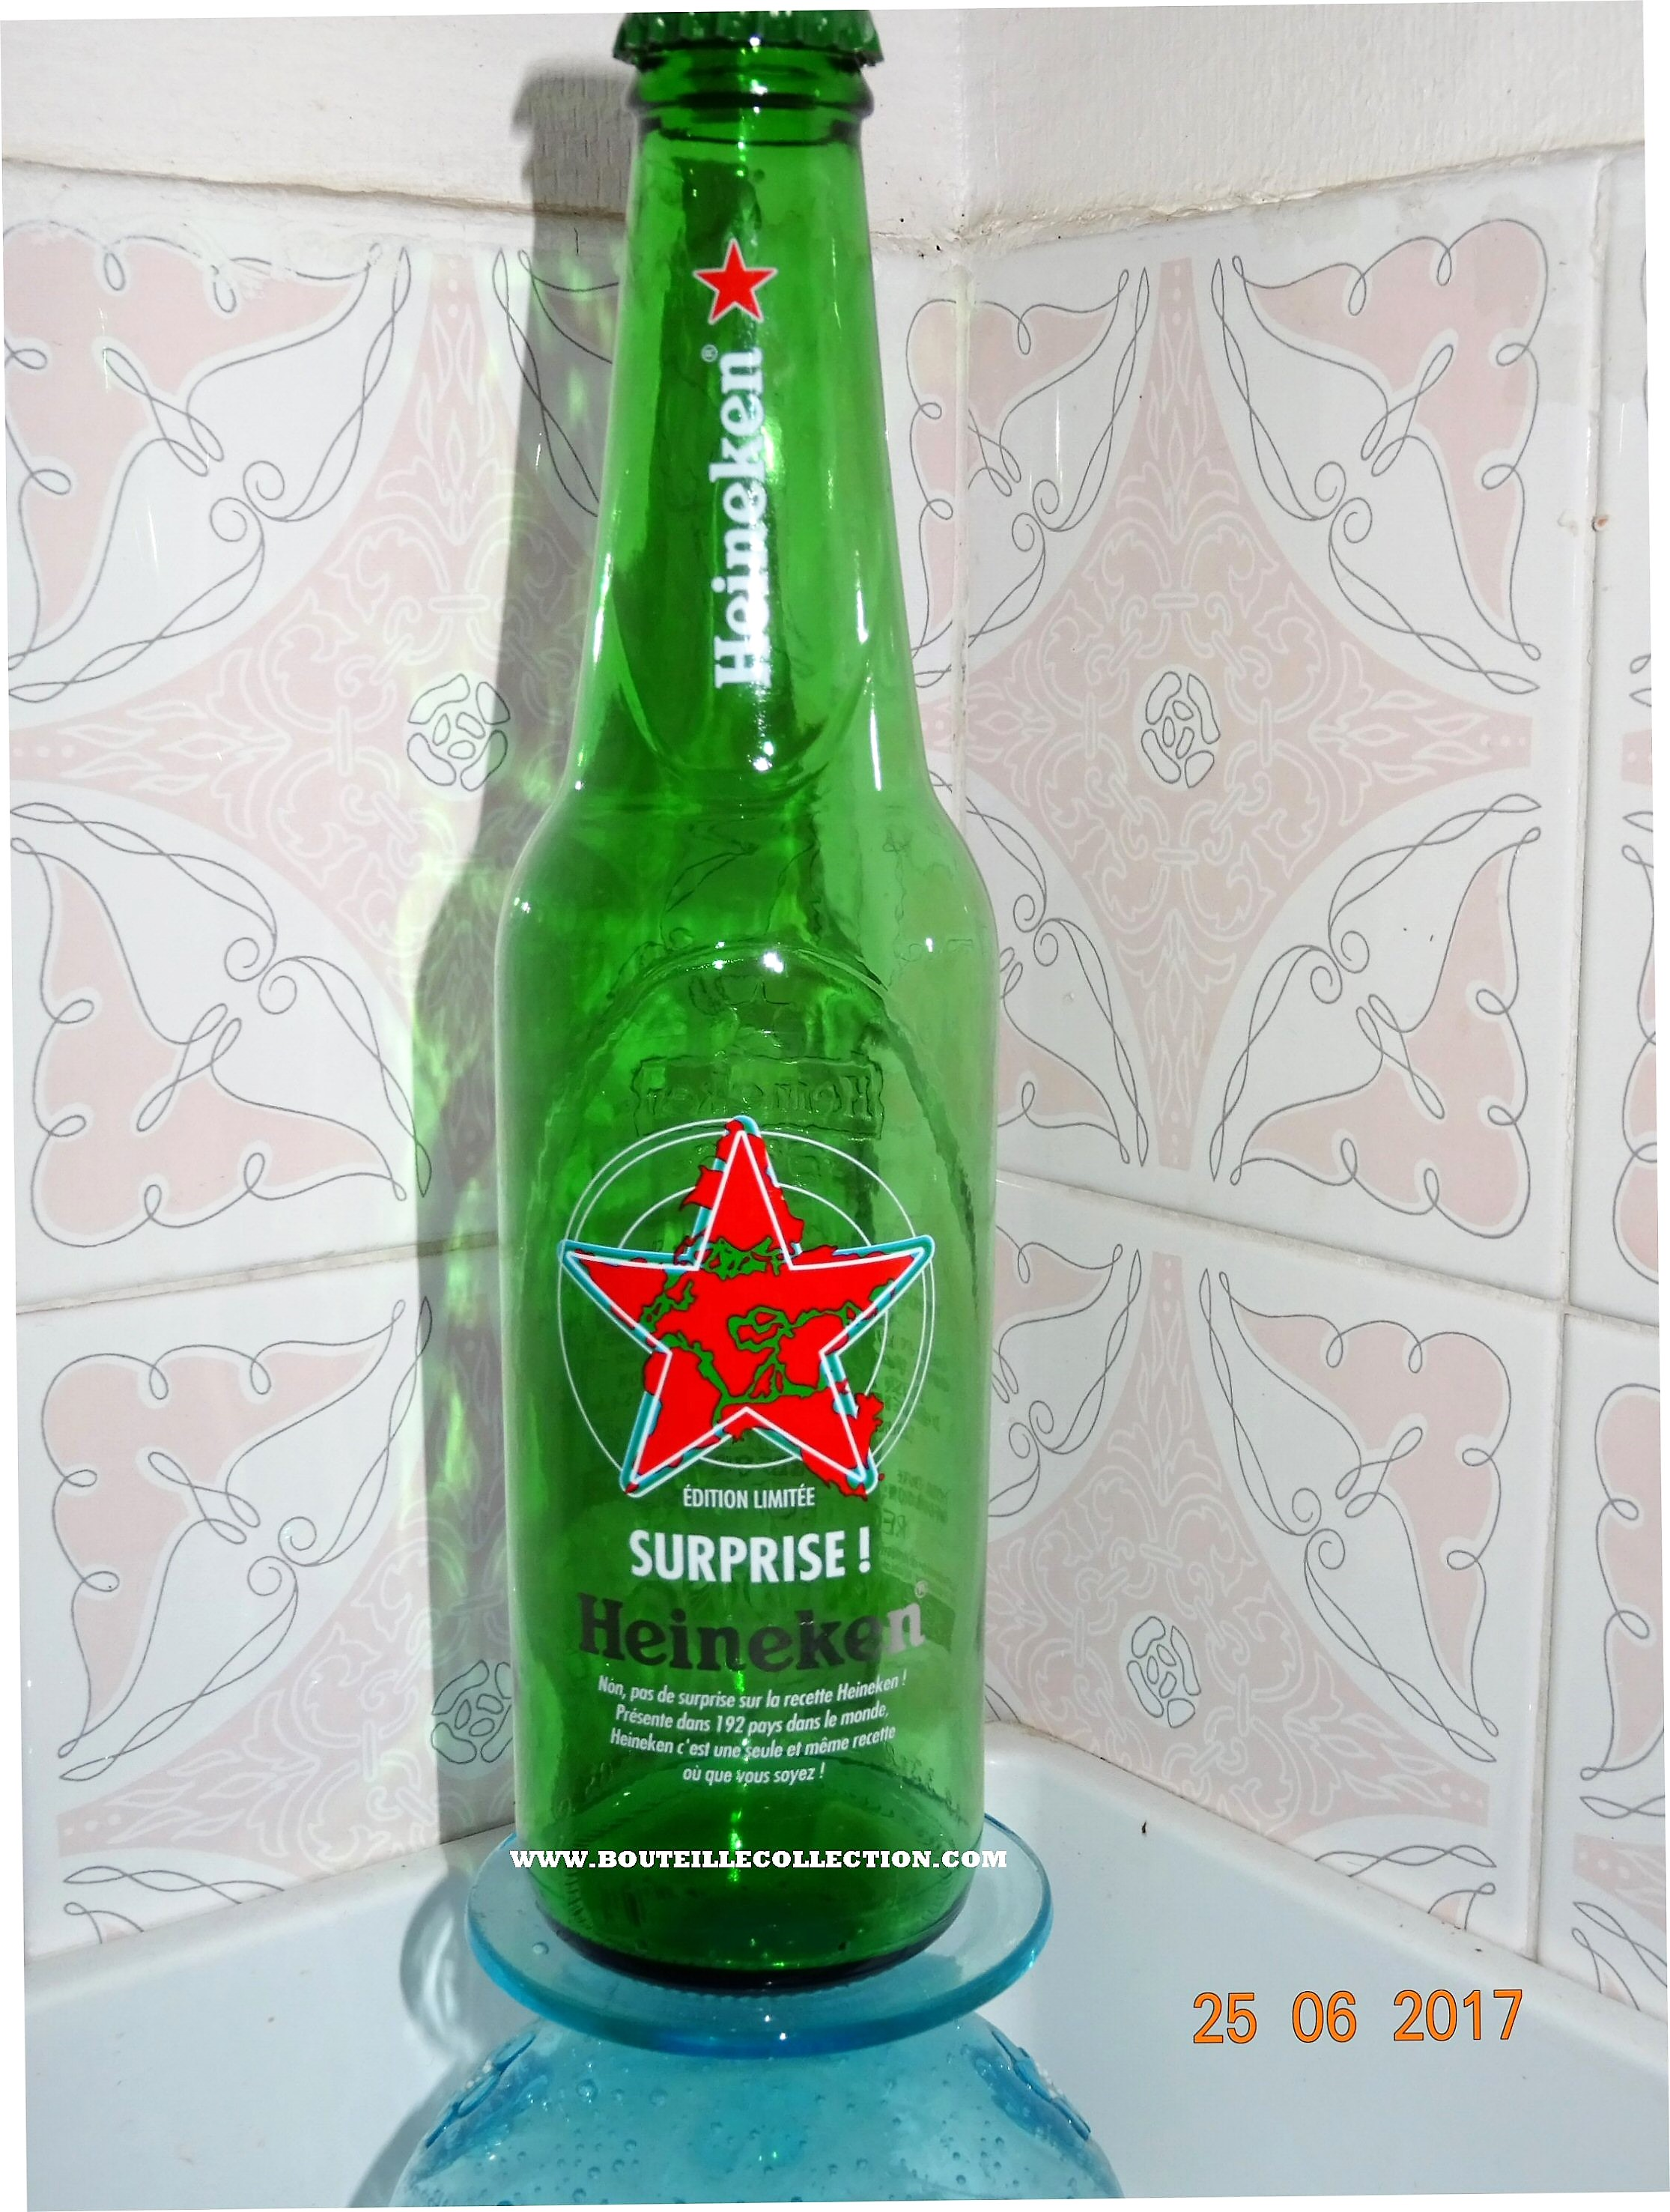 X HEINEKEN SURPRISE 2017 33CL B OK.jpg